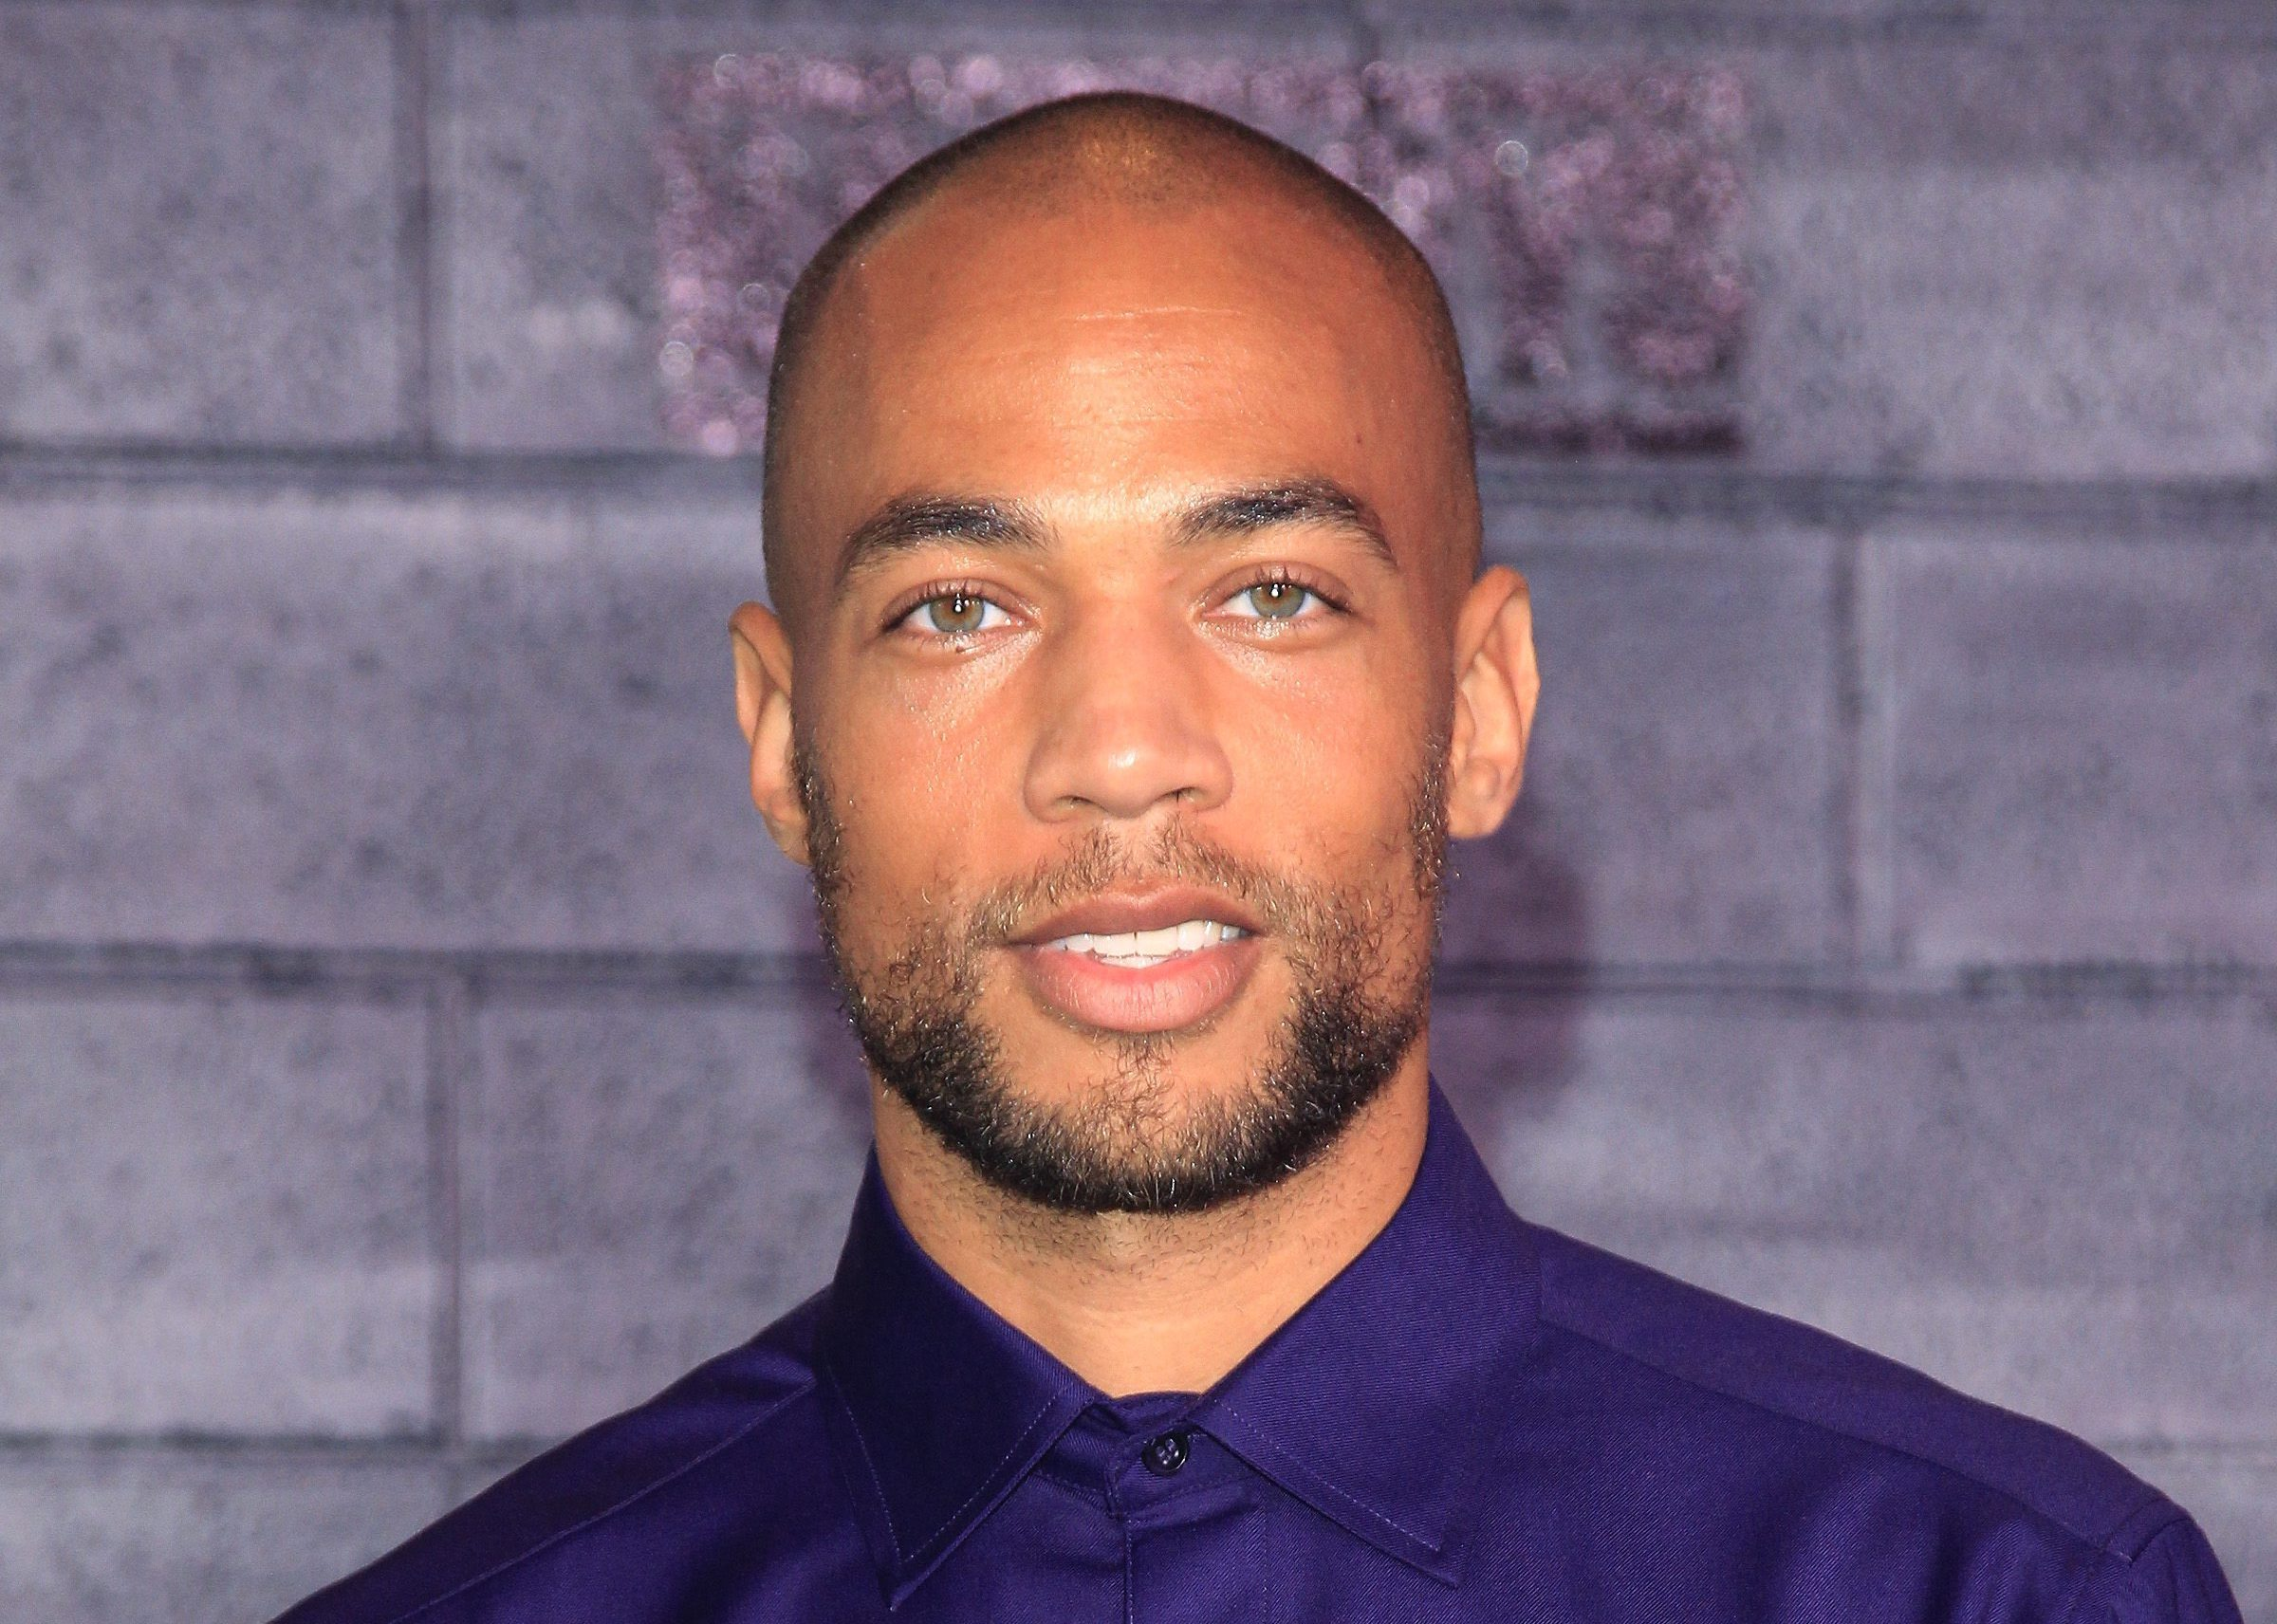 'Insecure' Star Kendrick Sampson Speaks Out After Being Hit By Rubber Bullets, Police Baton At Protest